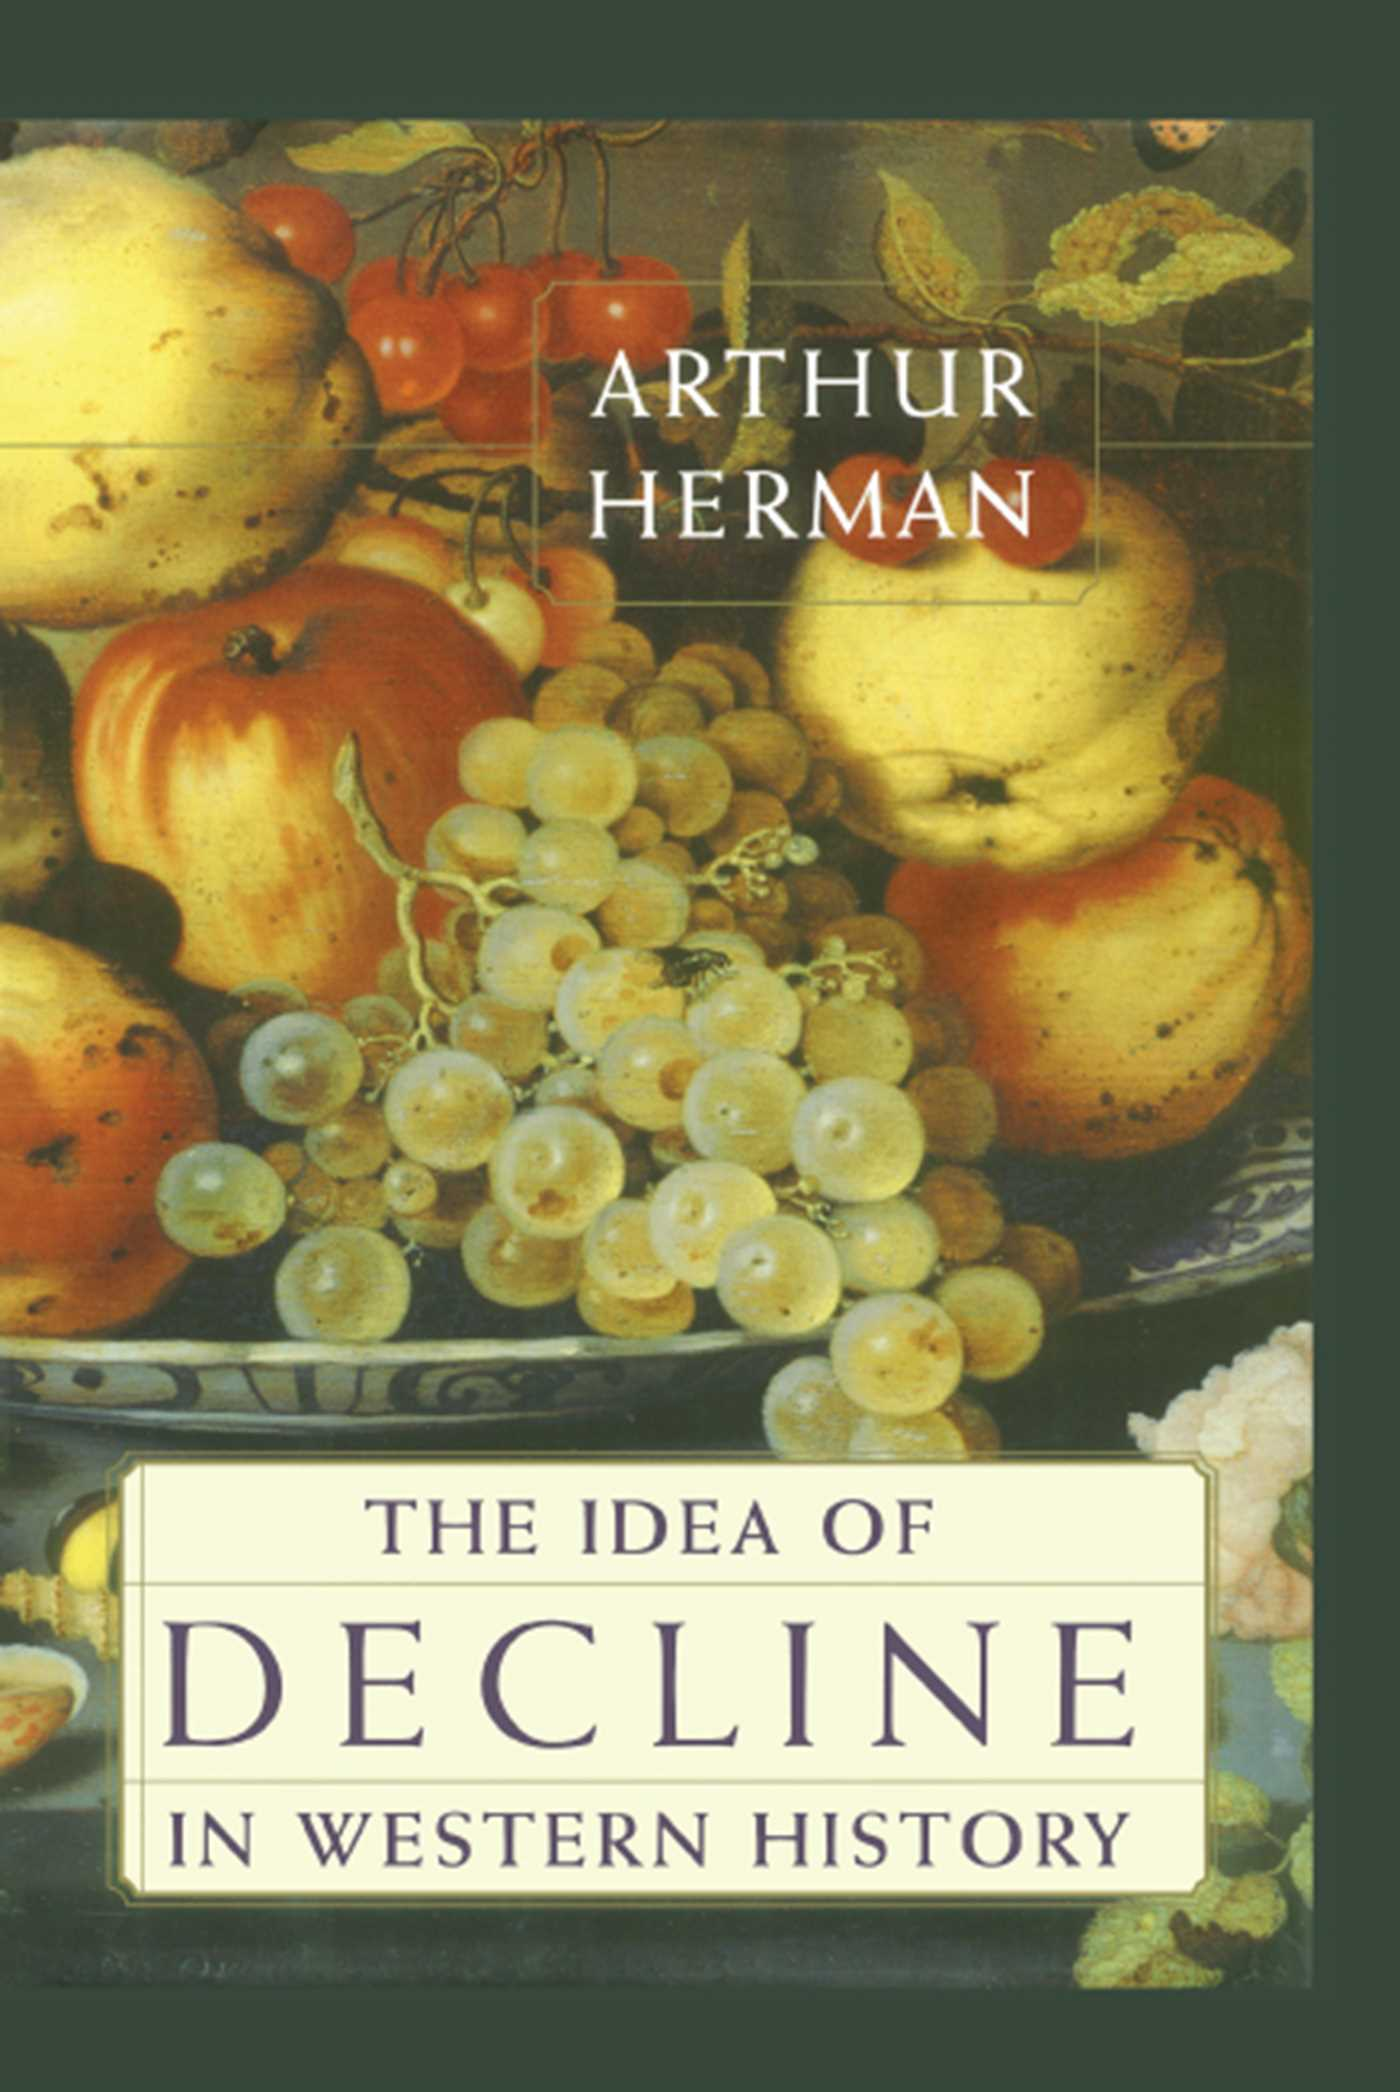 The idea of decline in western history 9781451603132 hr